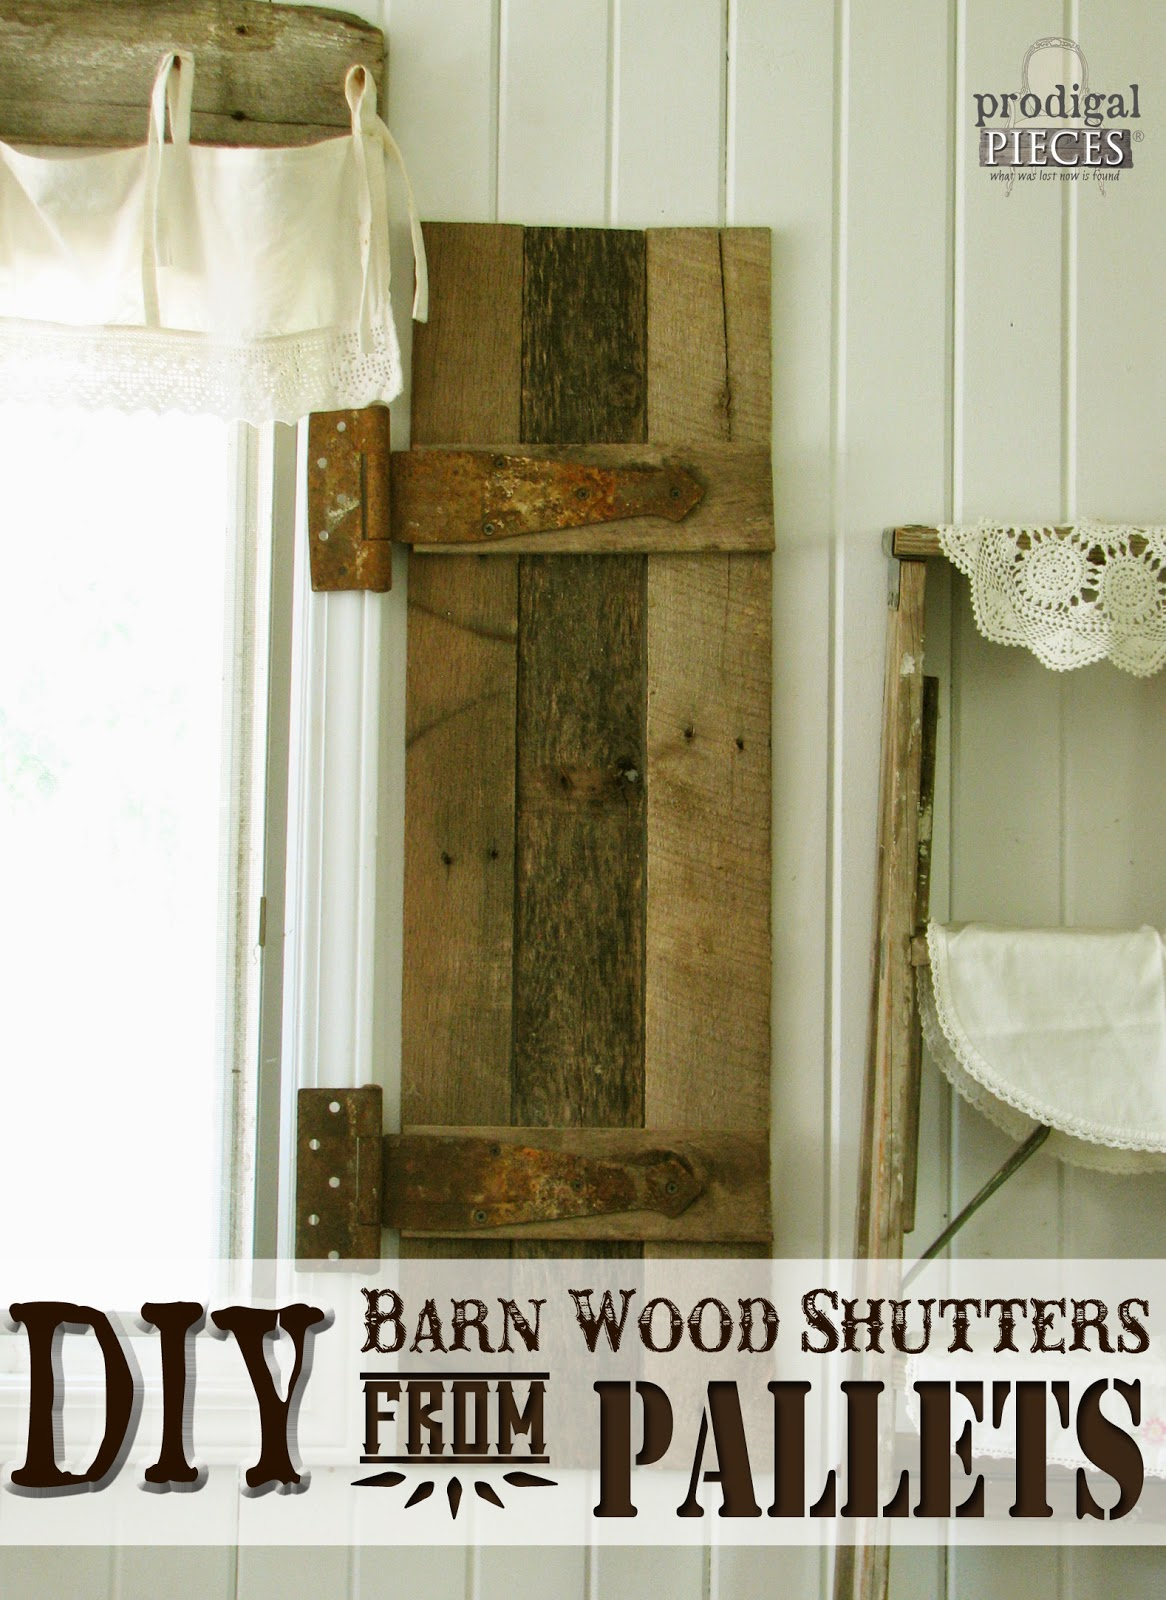 DIY Barn Wood Shutters by Prodigal Pieces at Remodelaholic http://www.prodigalpieces.com